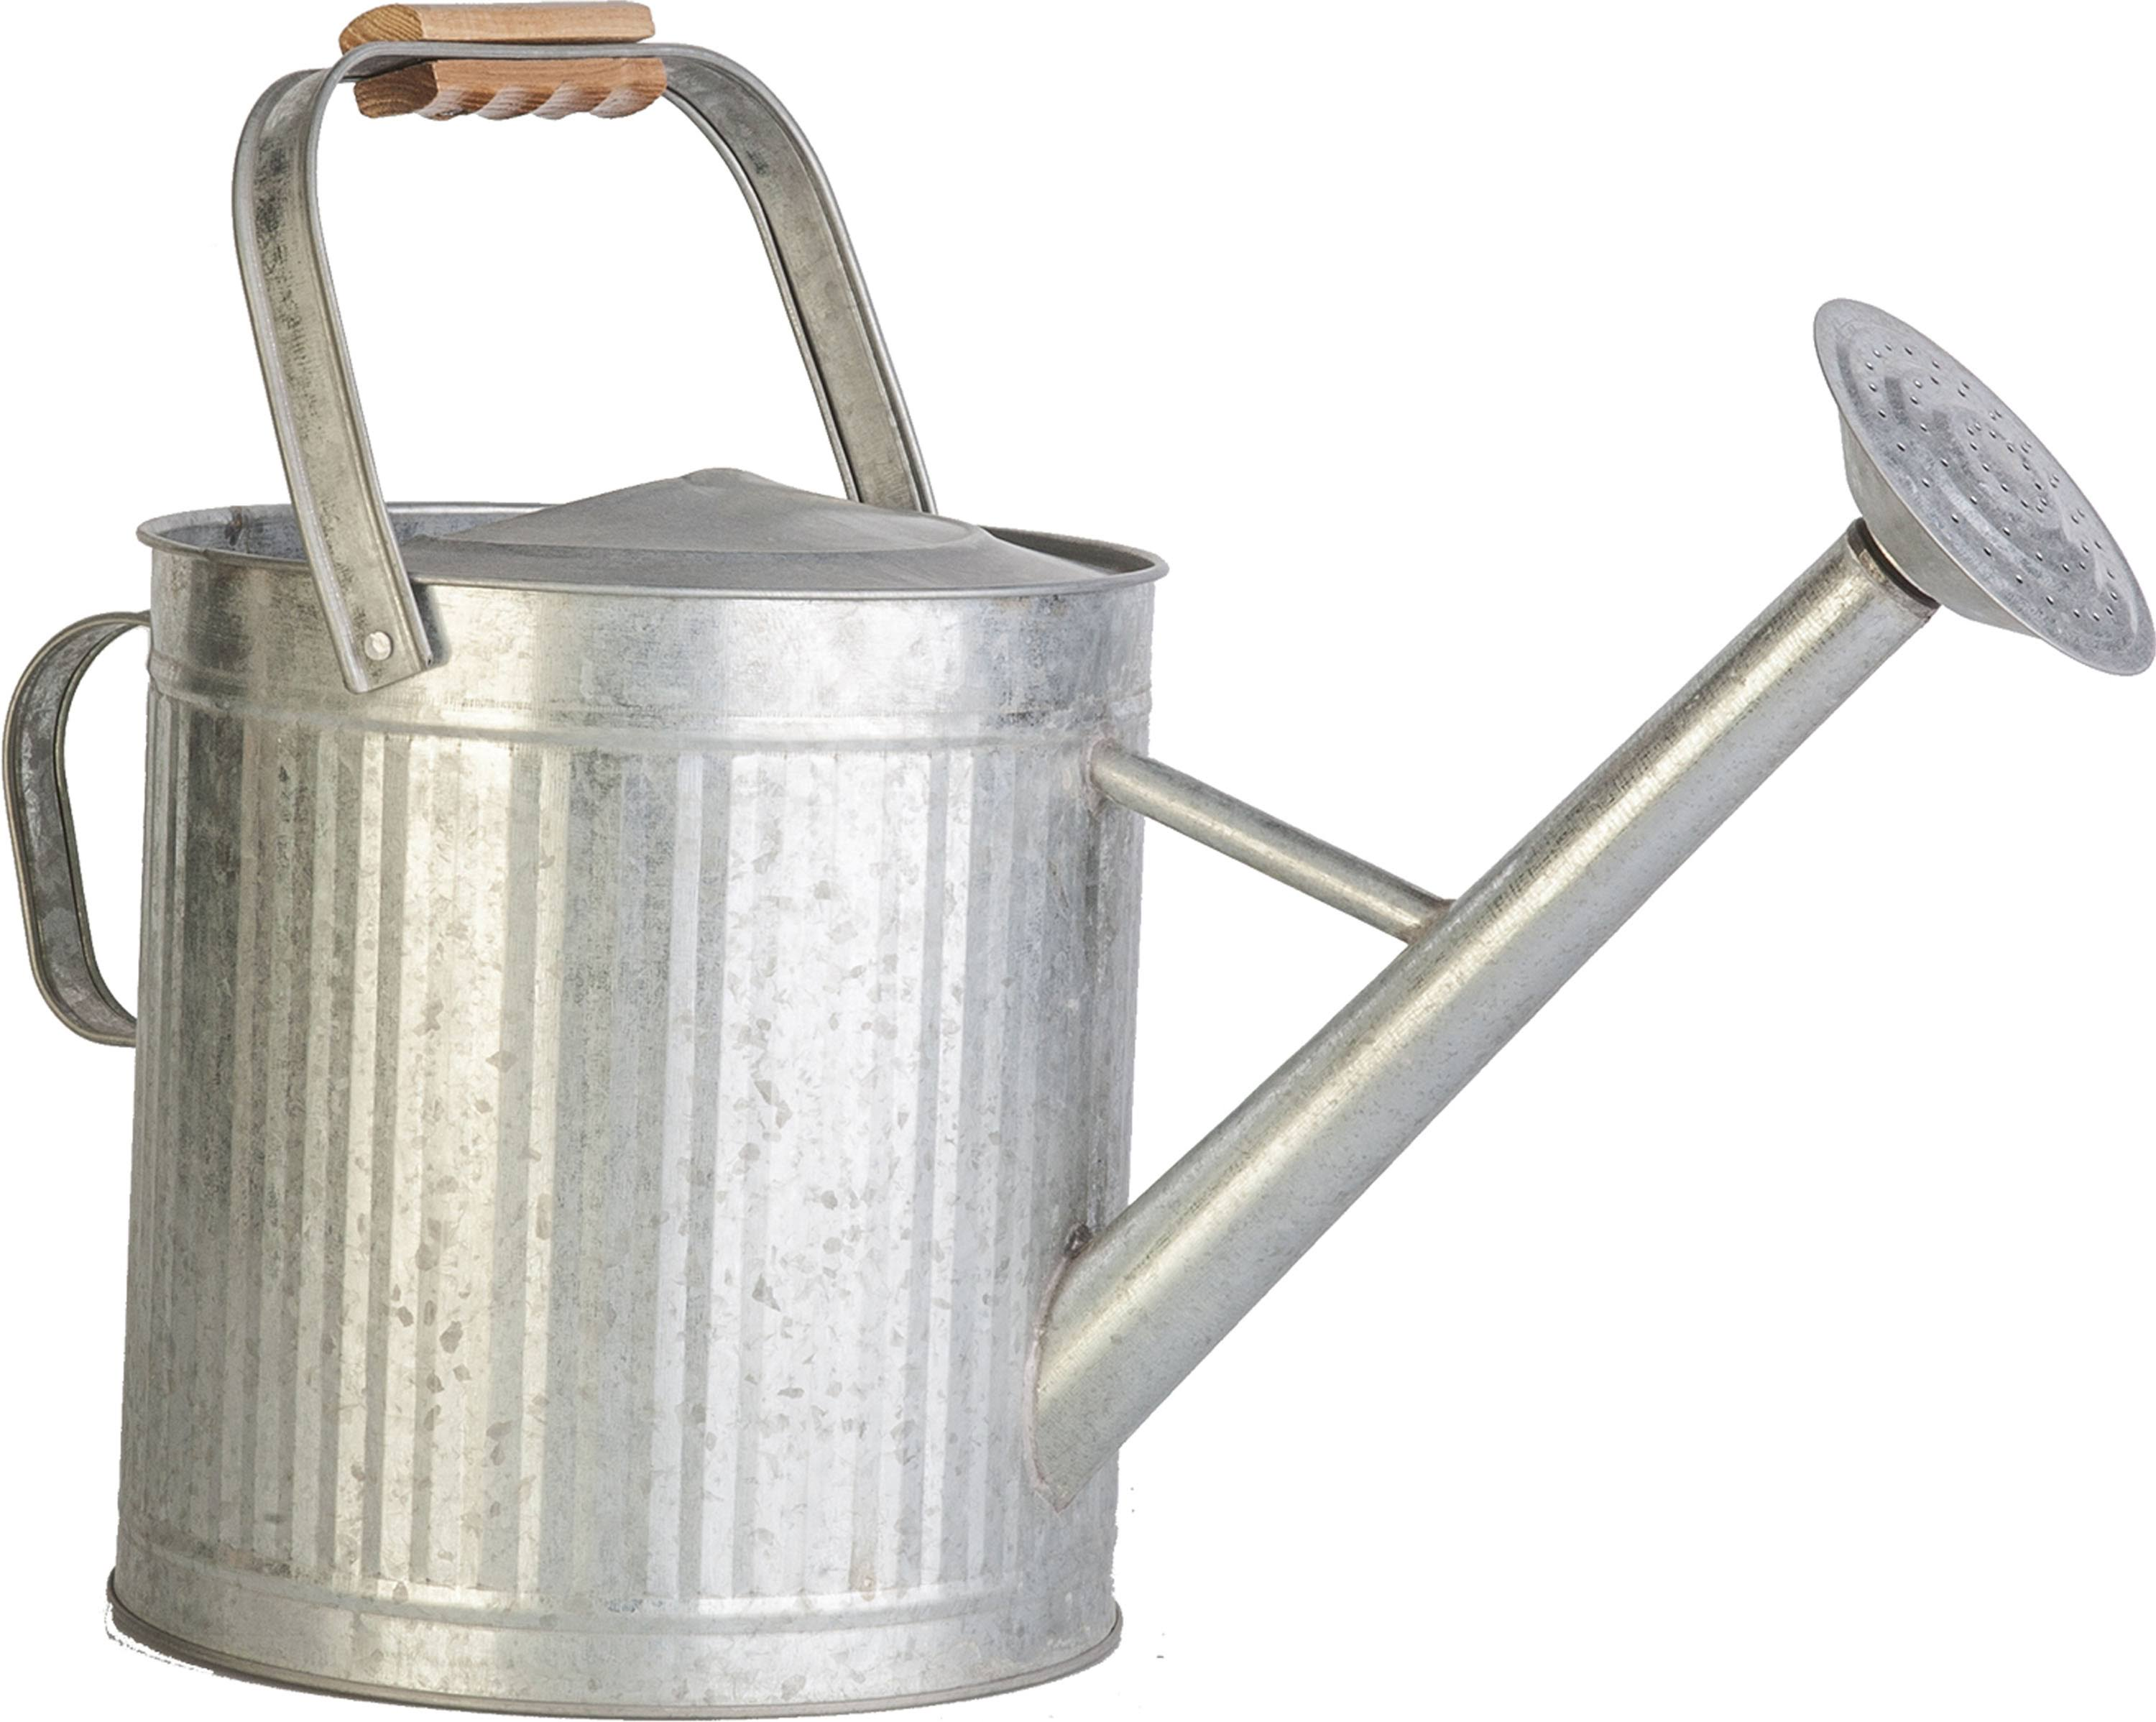 Panacea Vintage Watering Can - Galvanized, with Wood Handle, 2gal